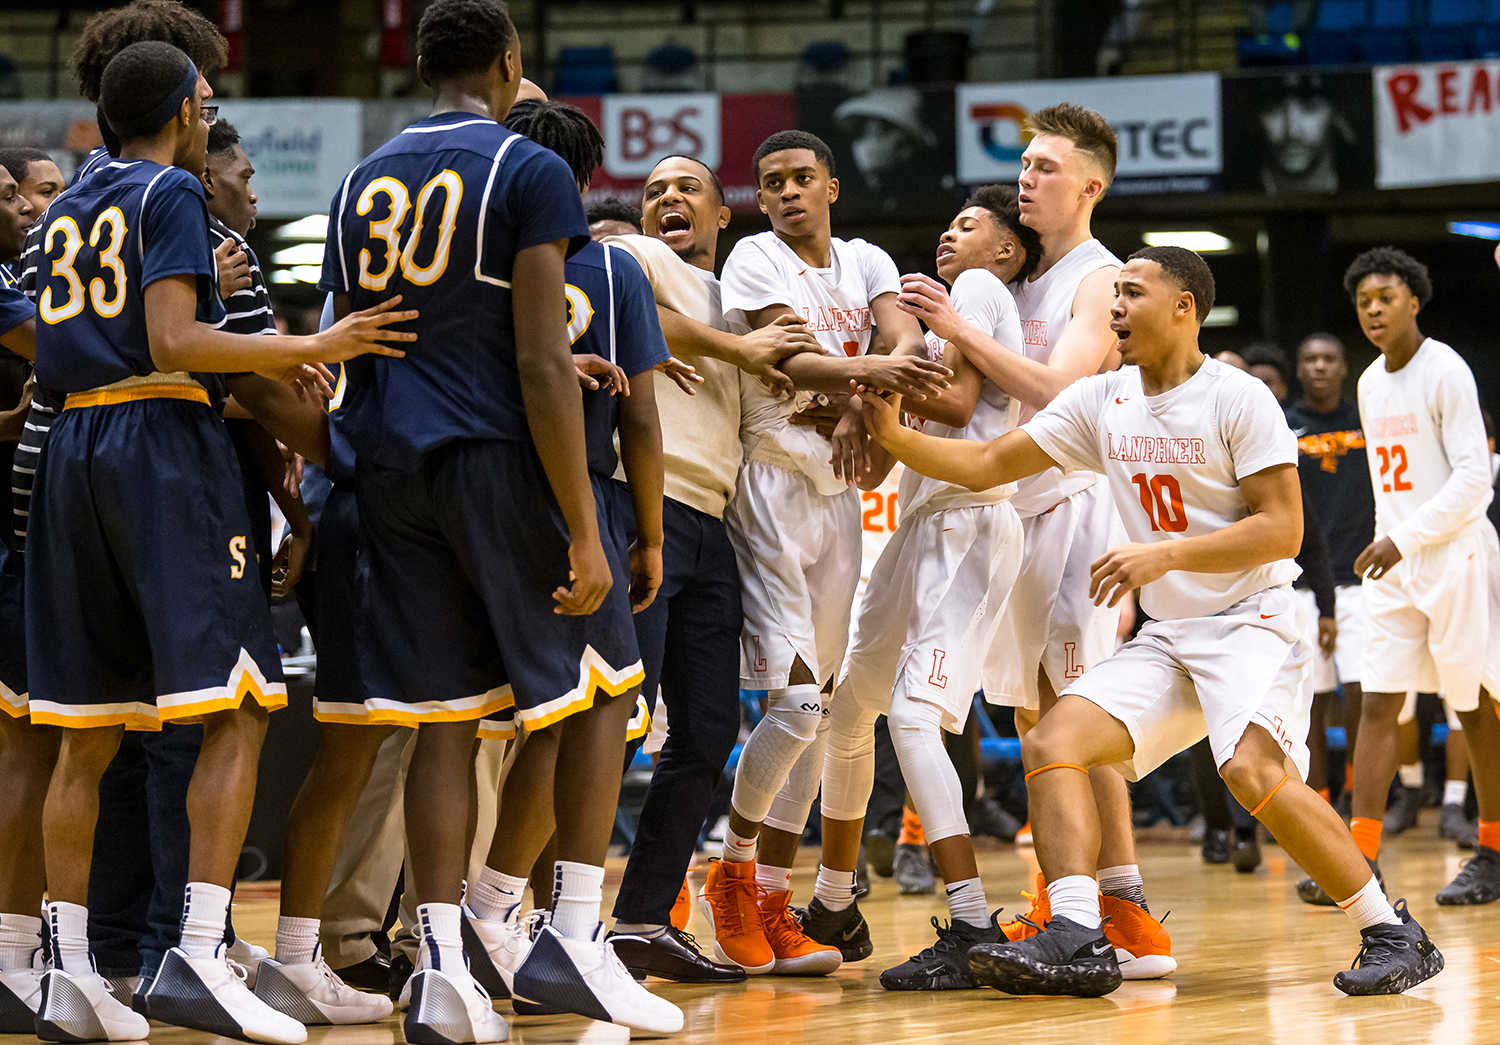 Lanphier's Larry Hemingway (4) his held back by an assistant coach as the Lions and Spartans get into a shoving match in the fourth quarter on opening night of the Boys City Tournament at the Bank of Springfield Center, Wednesday, Jan. 16, 2019, in Springfield, Ill. [Justin L. Fowler/The State Journal-Register]